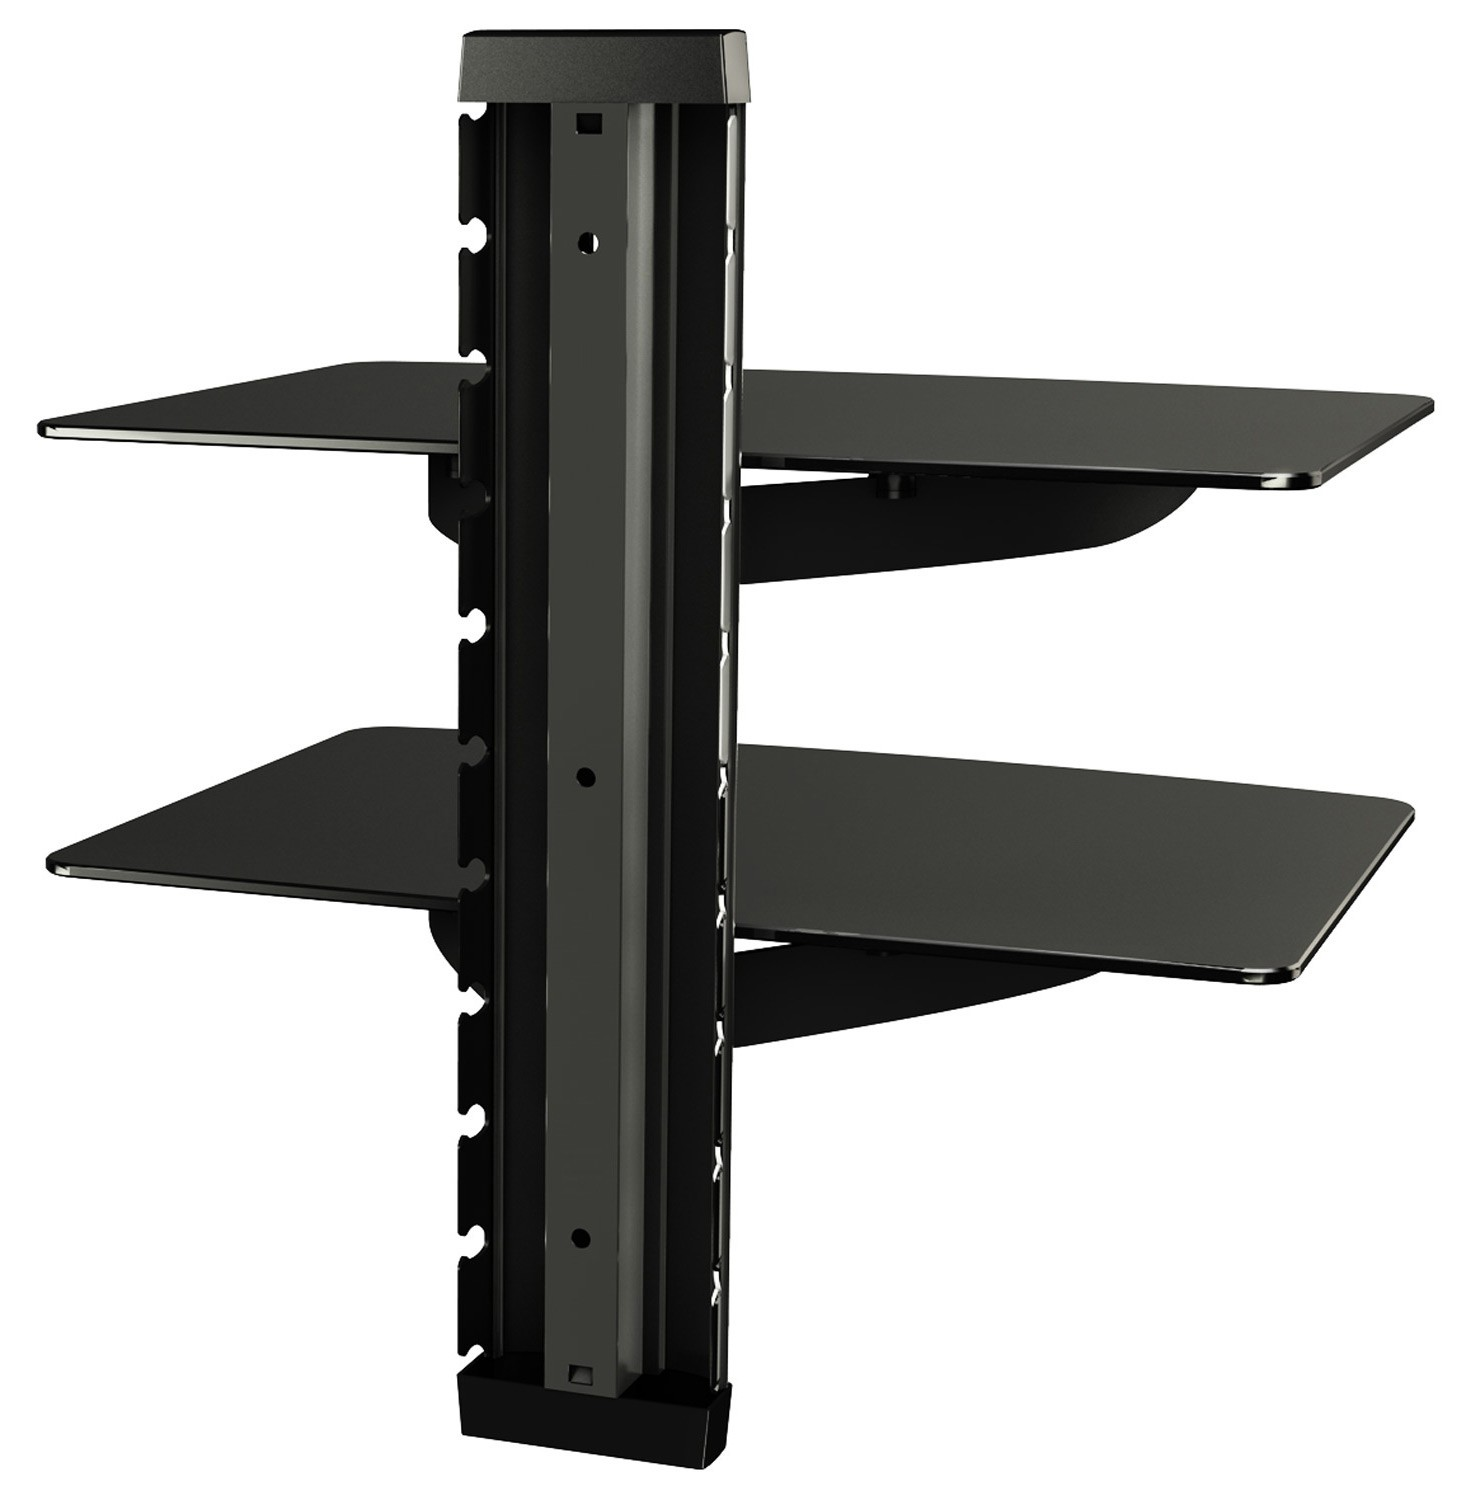 Wandregal Hifi Glasregal Hifi Wandregal Wandboard Hi Fi Regal Dvd Wand 11179